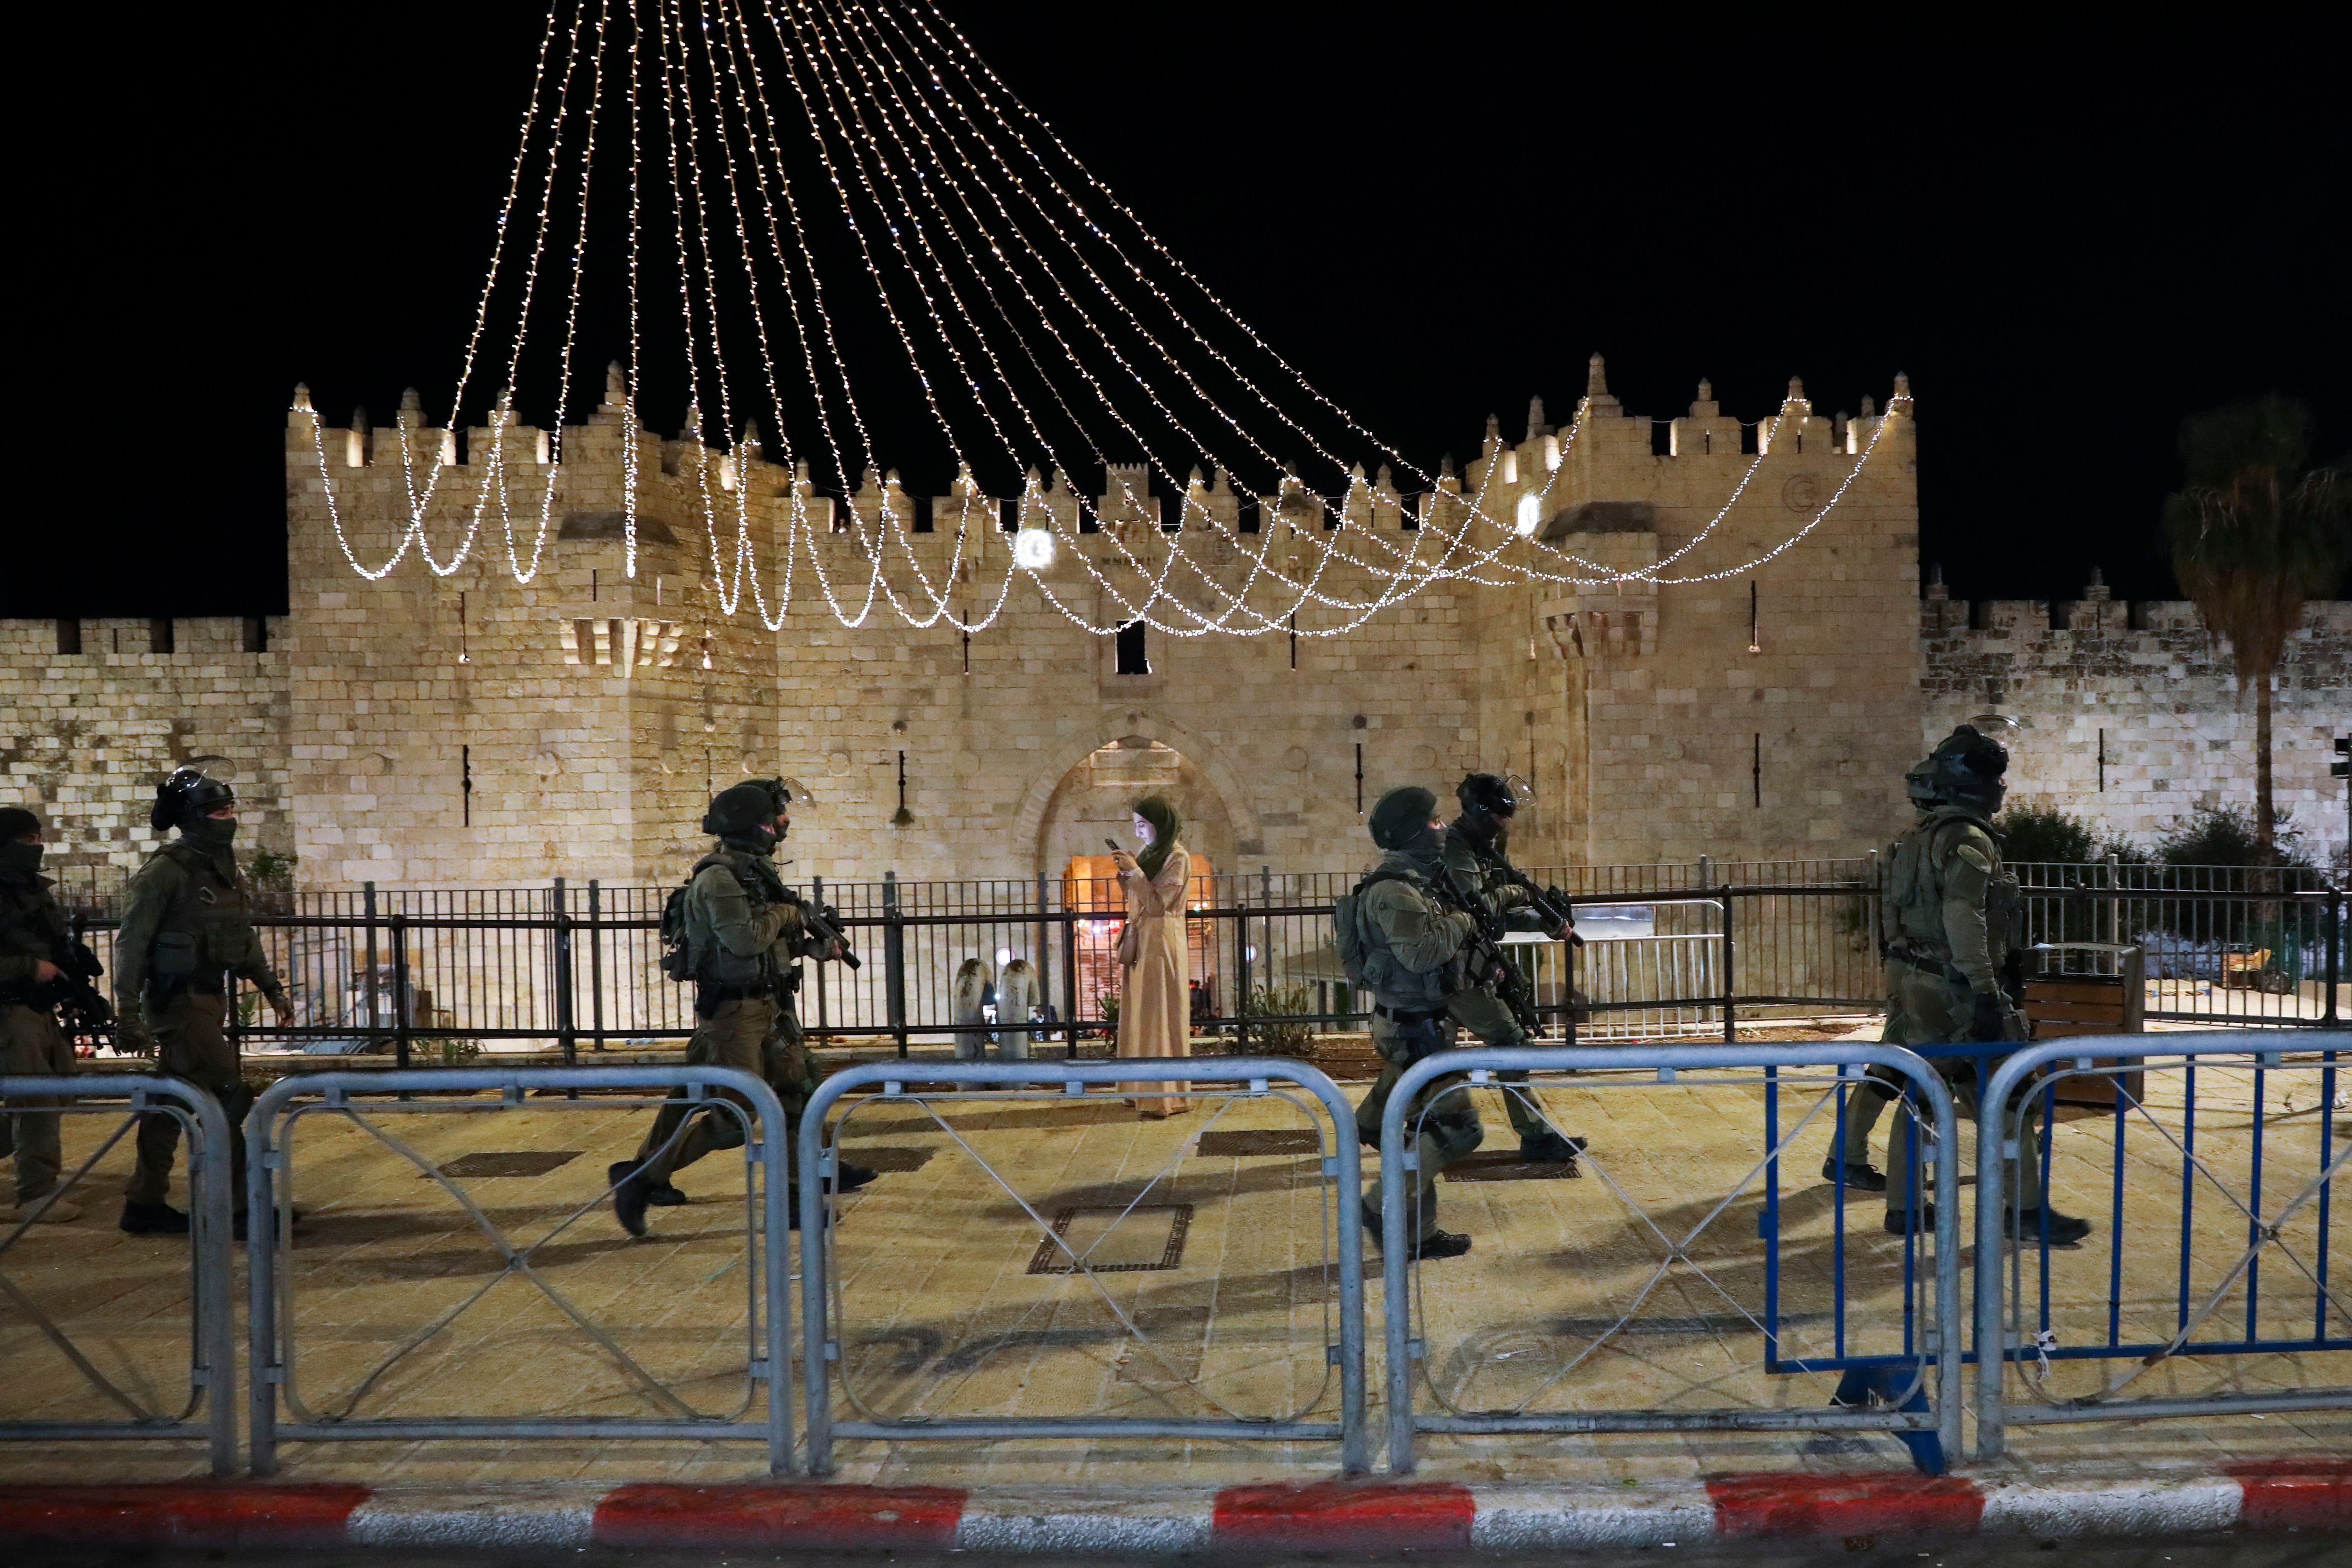 Medics: 200 Palestinians hurt in Al-Aqsa clashes with police